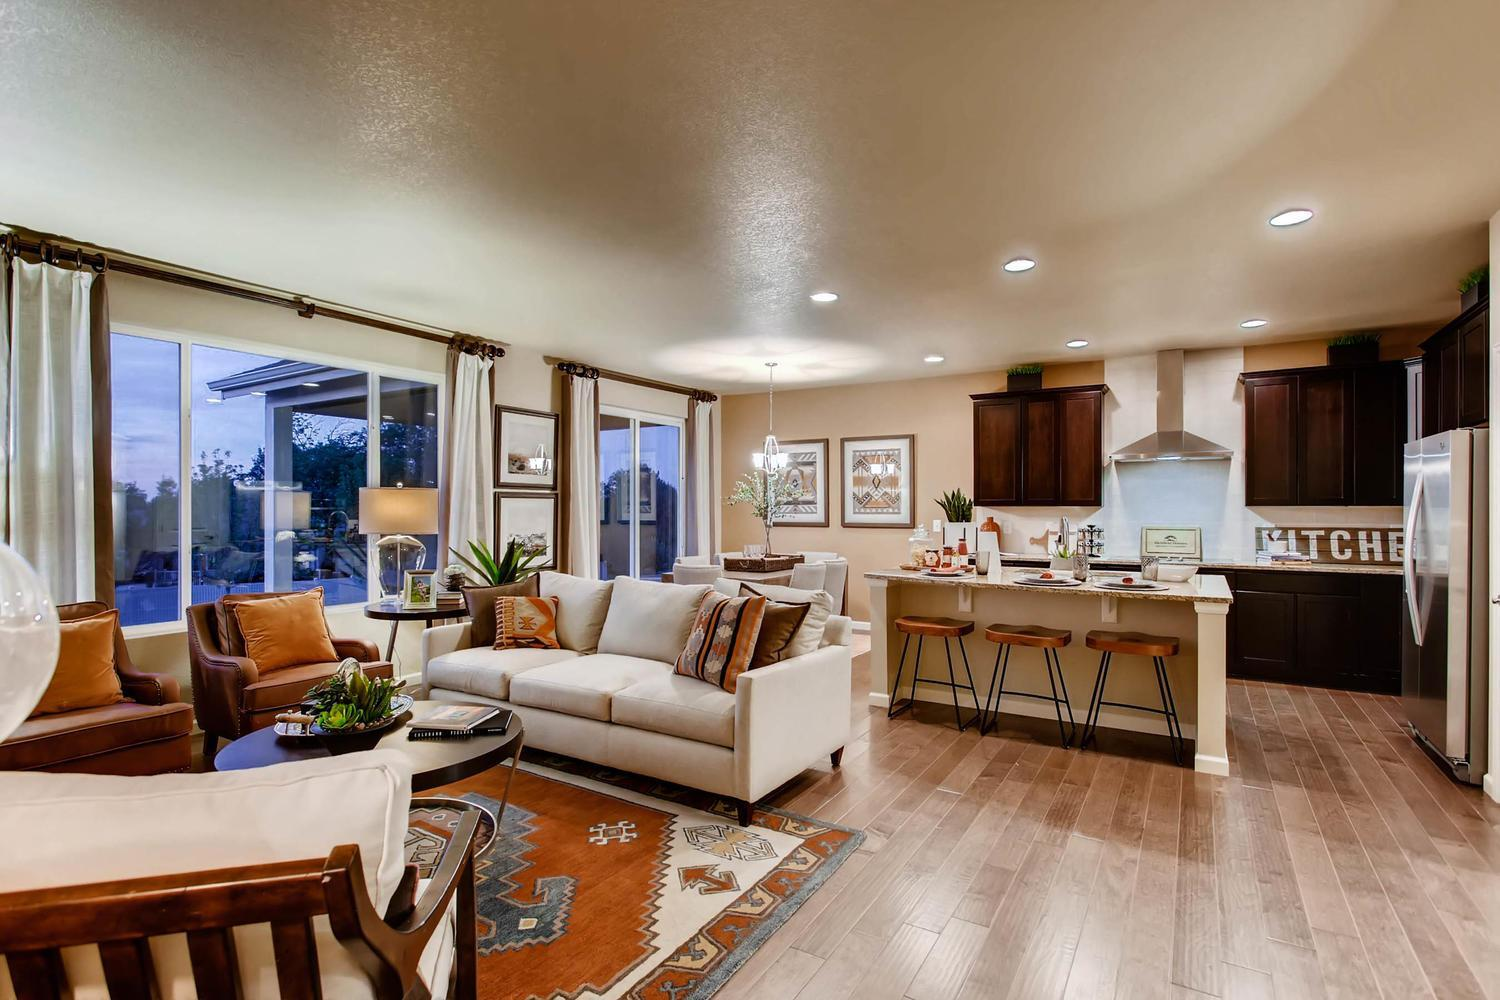 Living Area featured in the Lakewood II By RichfieldHomes in Fort Collins-Loveland, CO